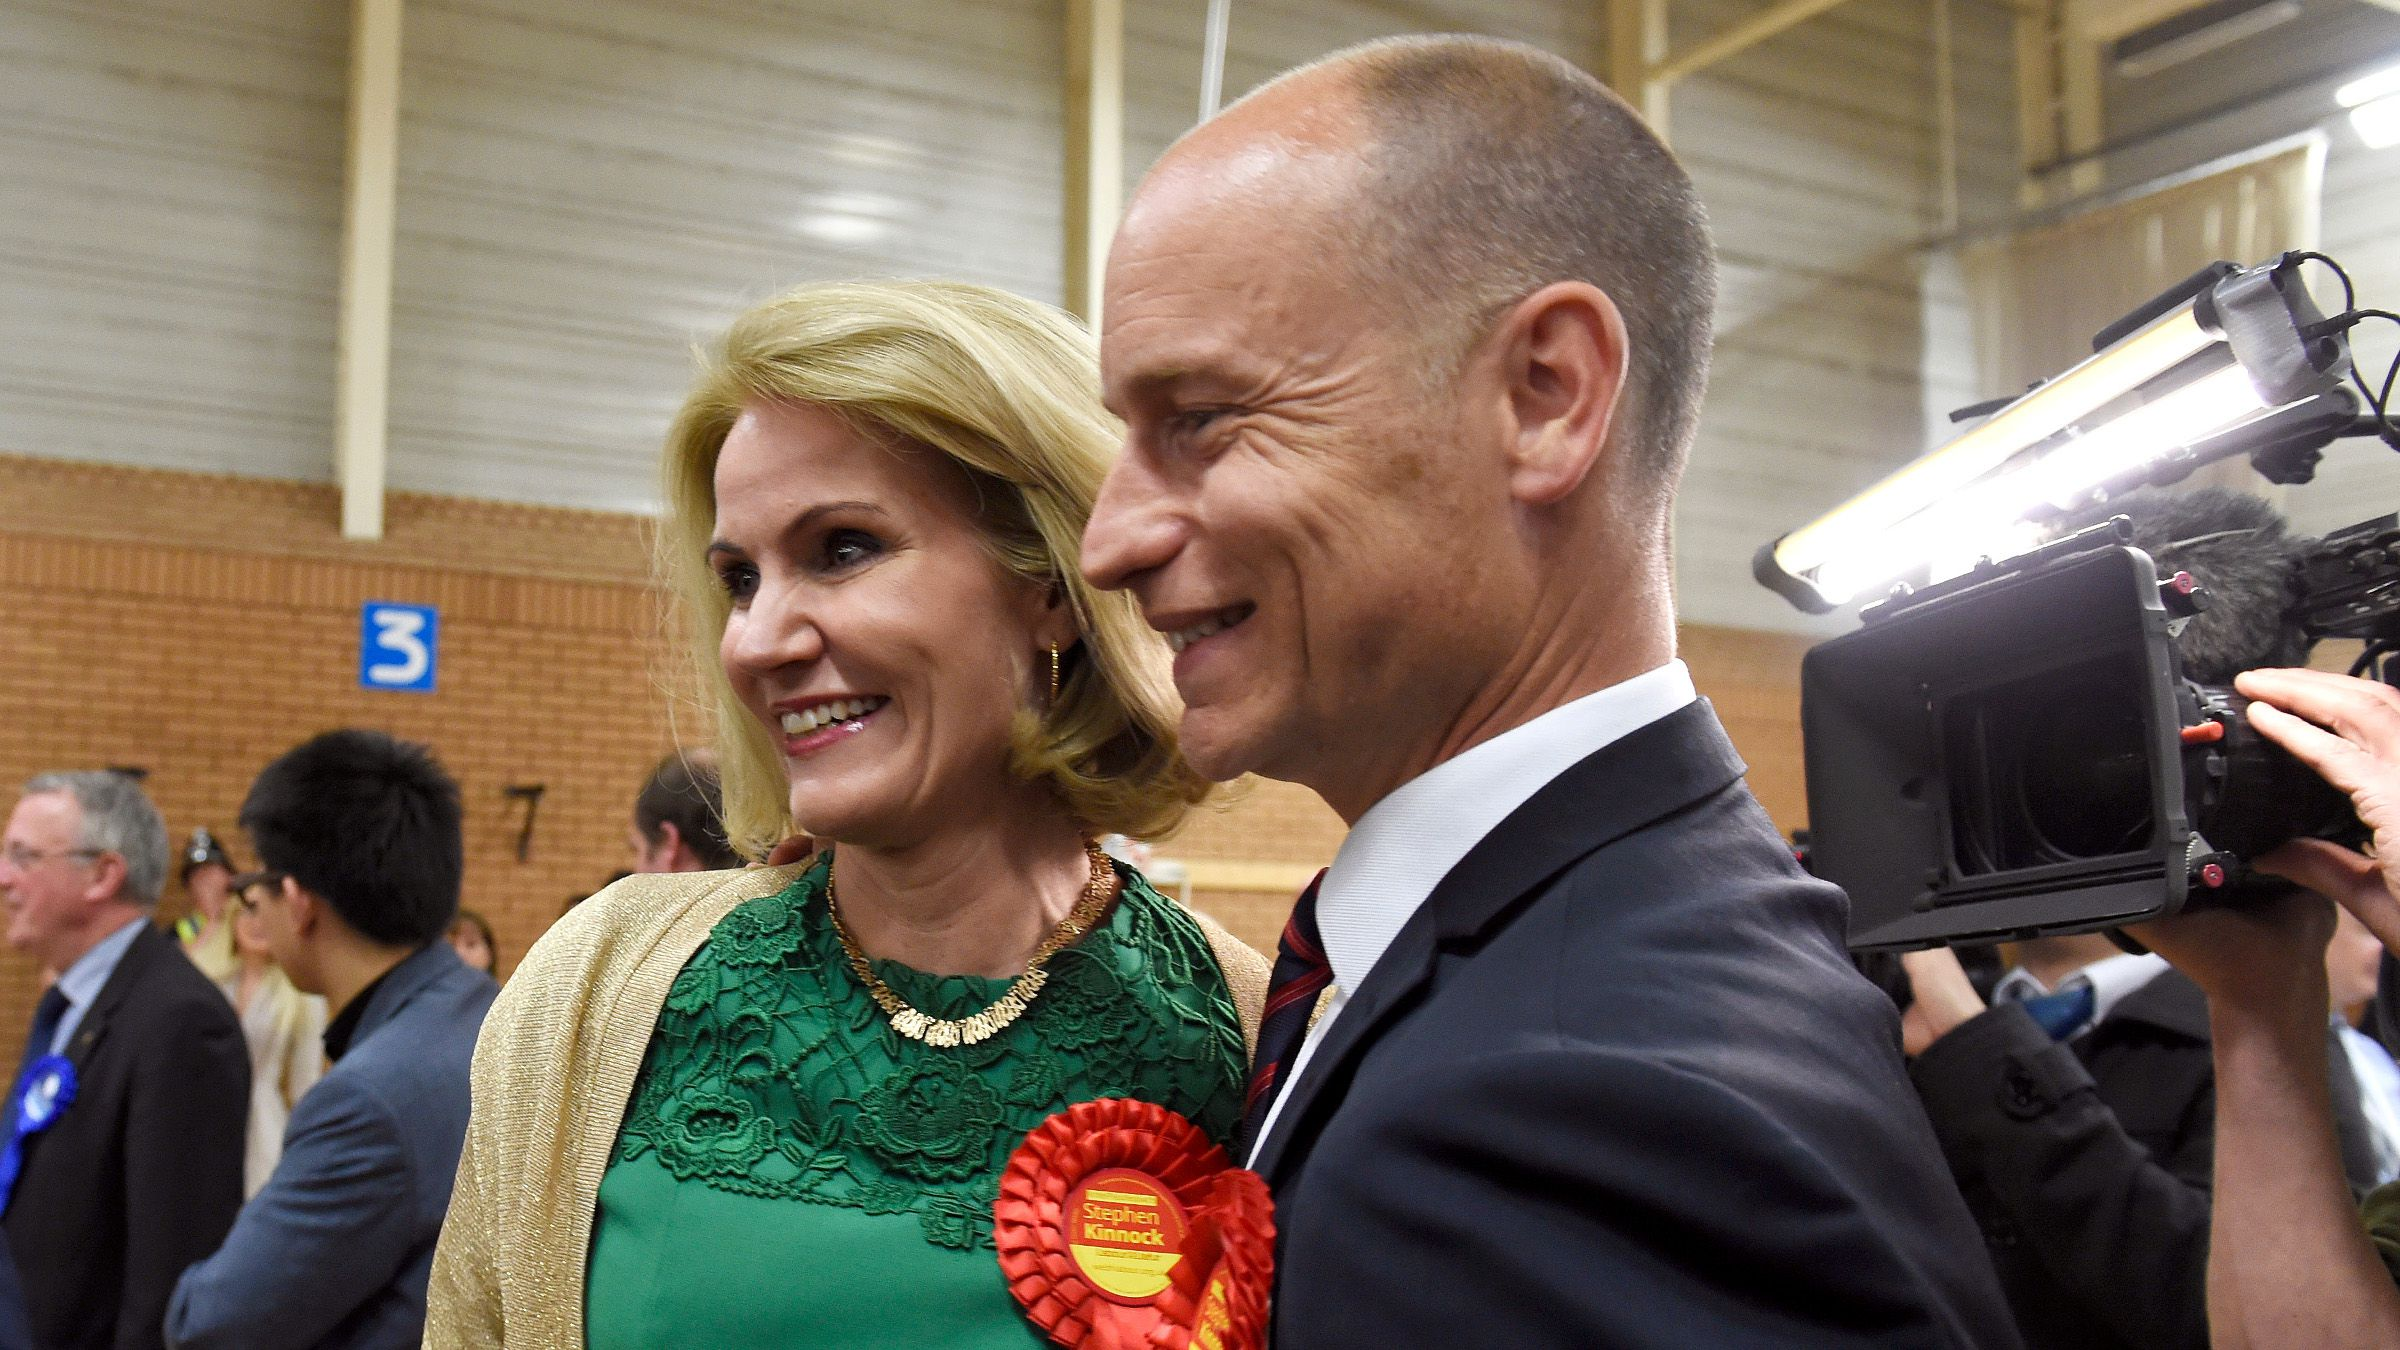 Danish Prime Minister Helle Thorning-Schmidt celebrates with her husband Stephen Kinnock as he is elected the Member of Parliament for the Aberavon Constituency in the Neath Sports Centre, Neath, South Wales, May 8, 2015.